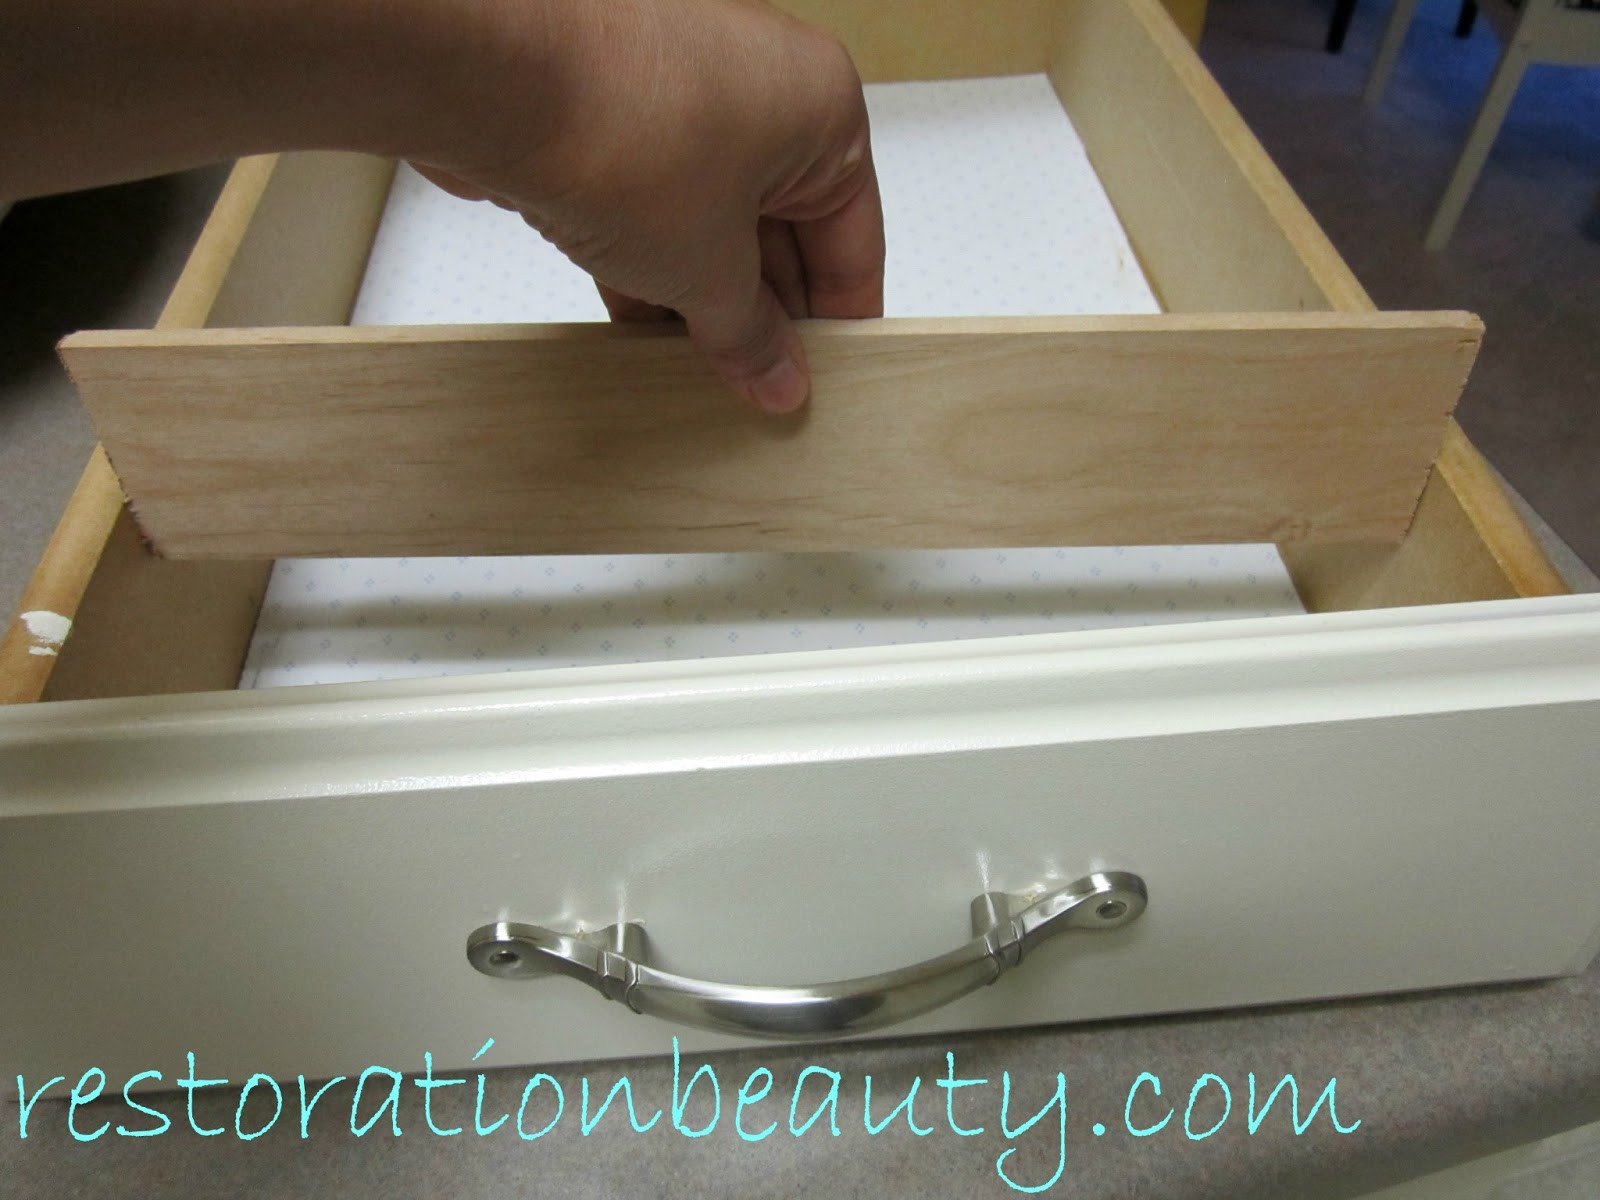 Best ideas about Drawer Dividers DIY . Save or Pin Restoration Beauty DIY Wooden Drawer Organizing Dividers Now.